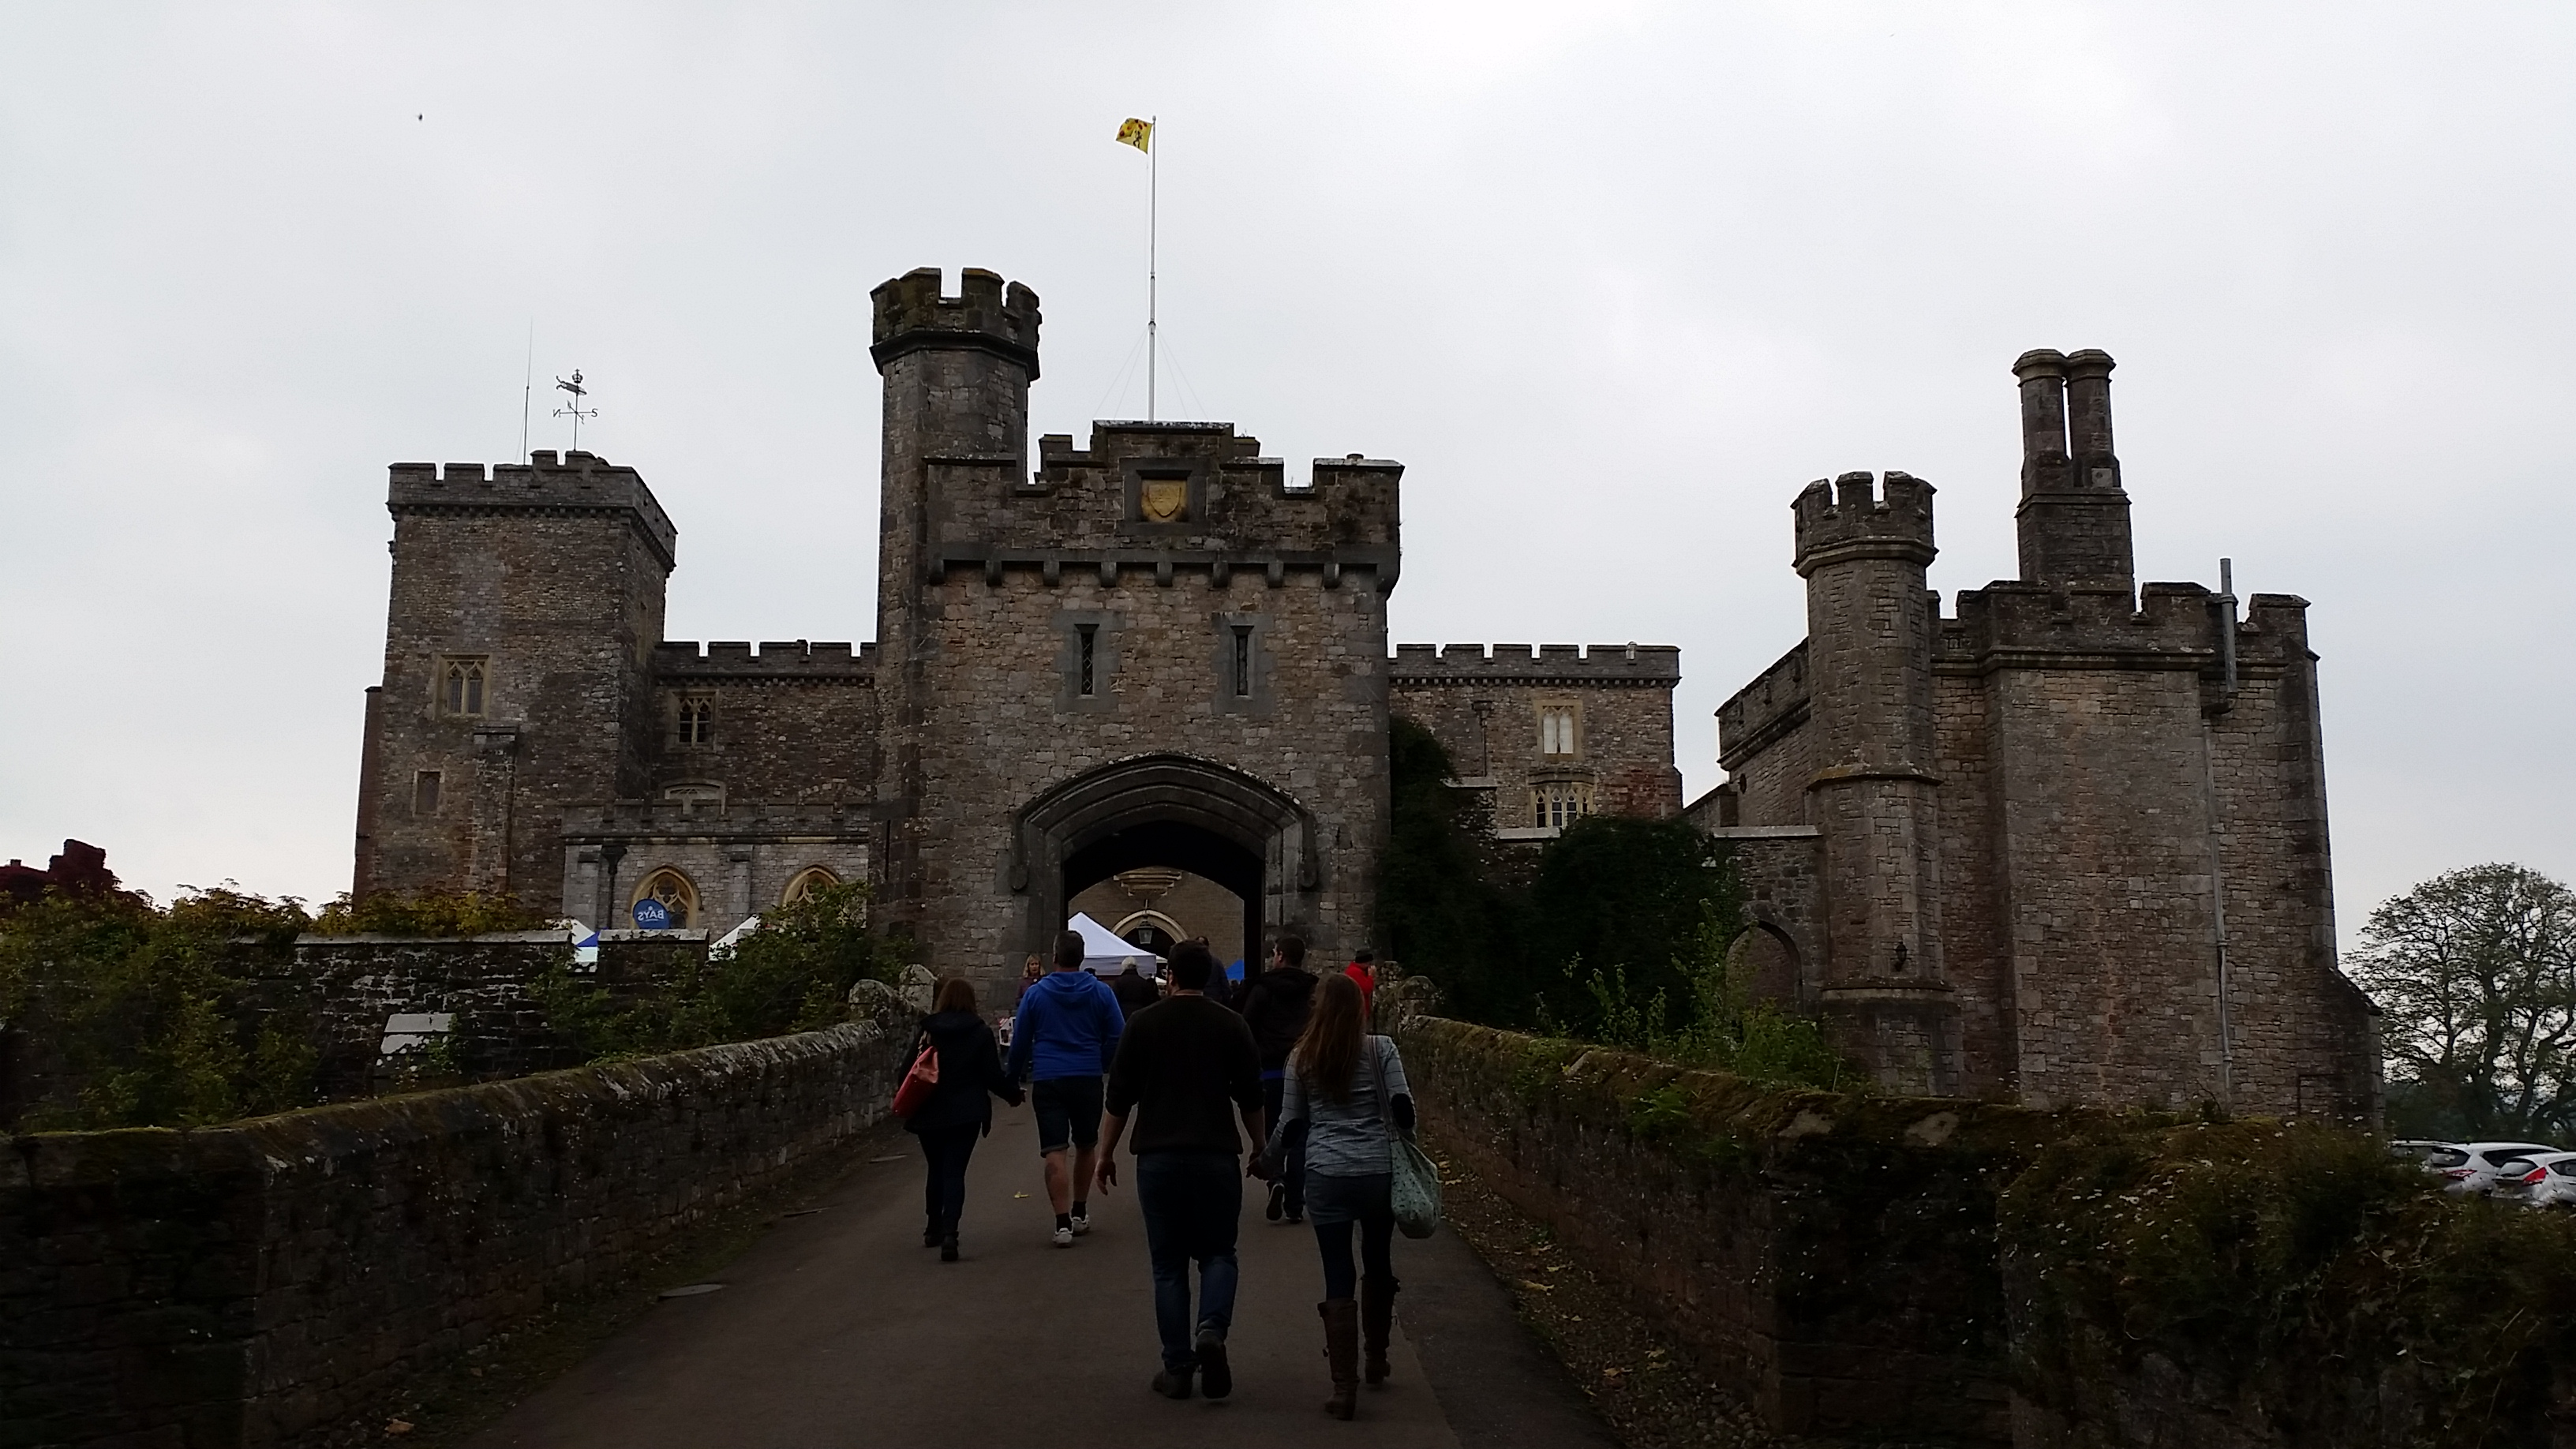 Food Festival at a Castle!